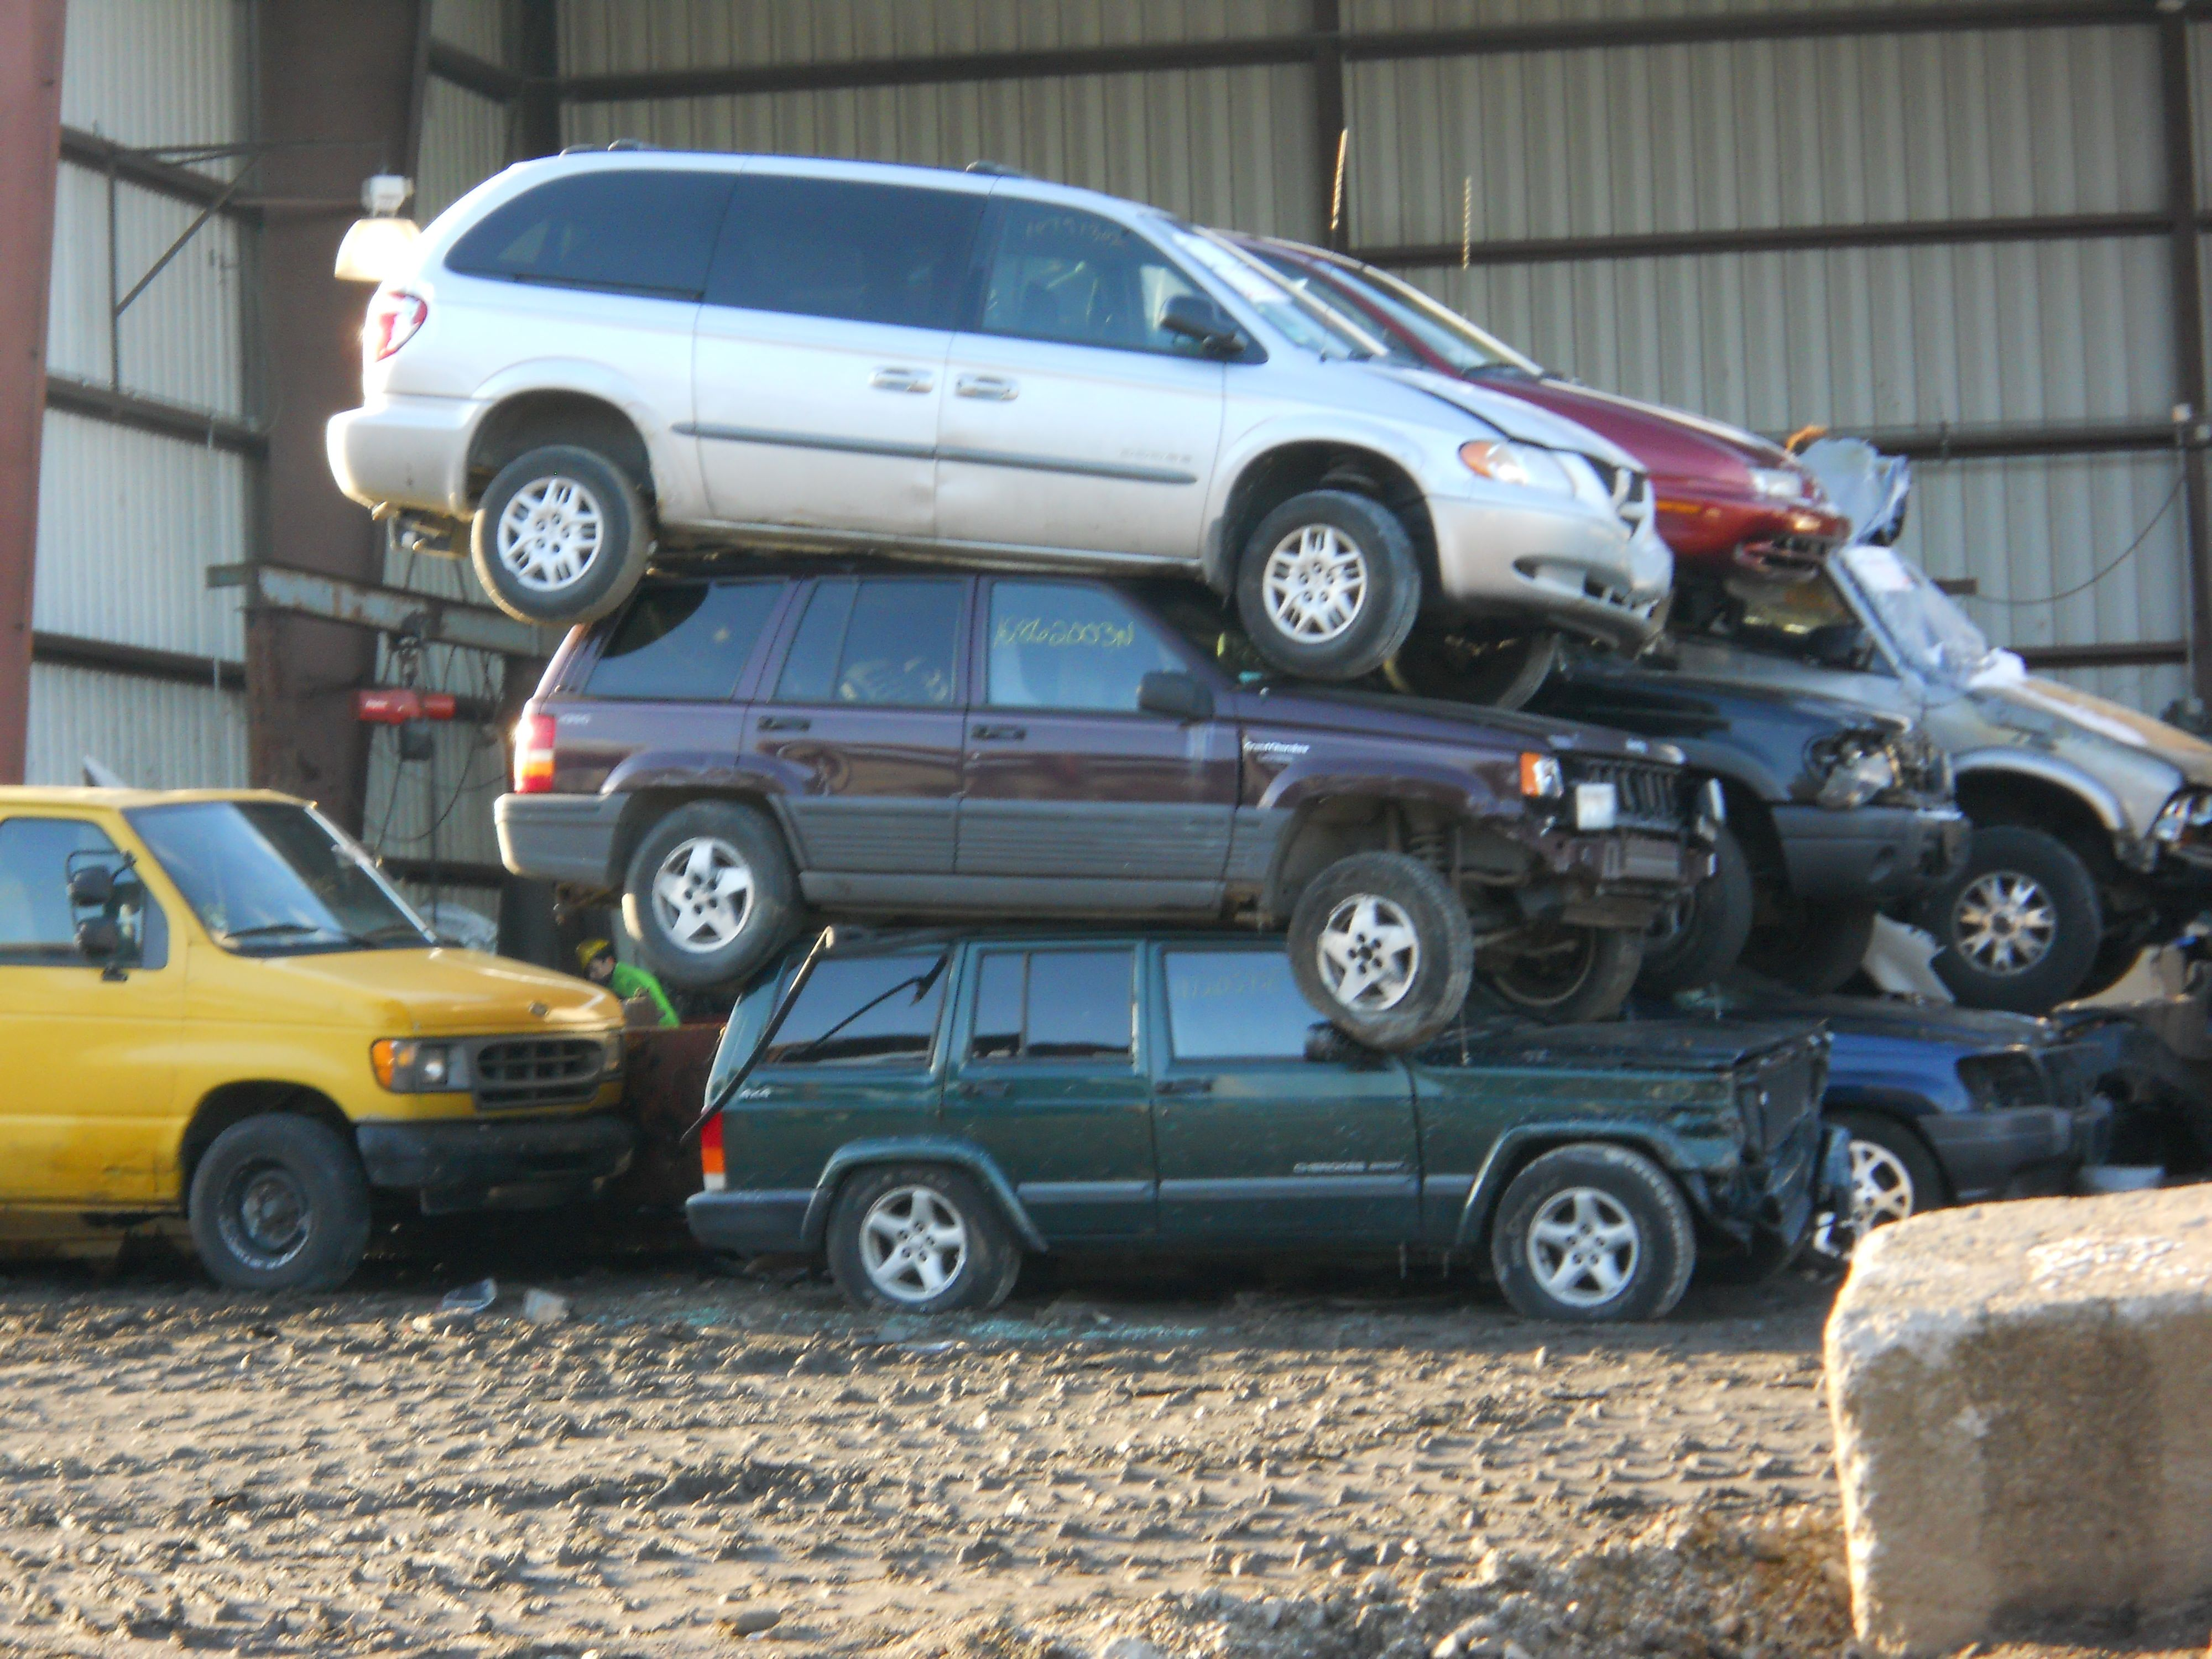 Scrap Cars Near Me >> Huge Cash For Every Scrap Car This Is What We Do Try Us You Will